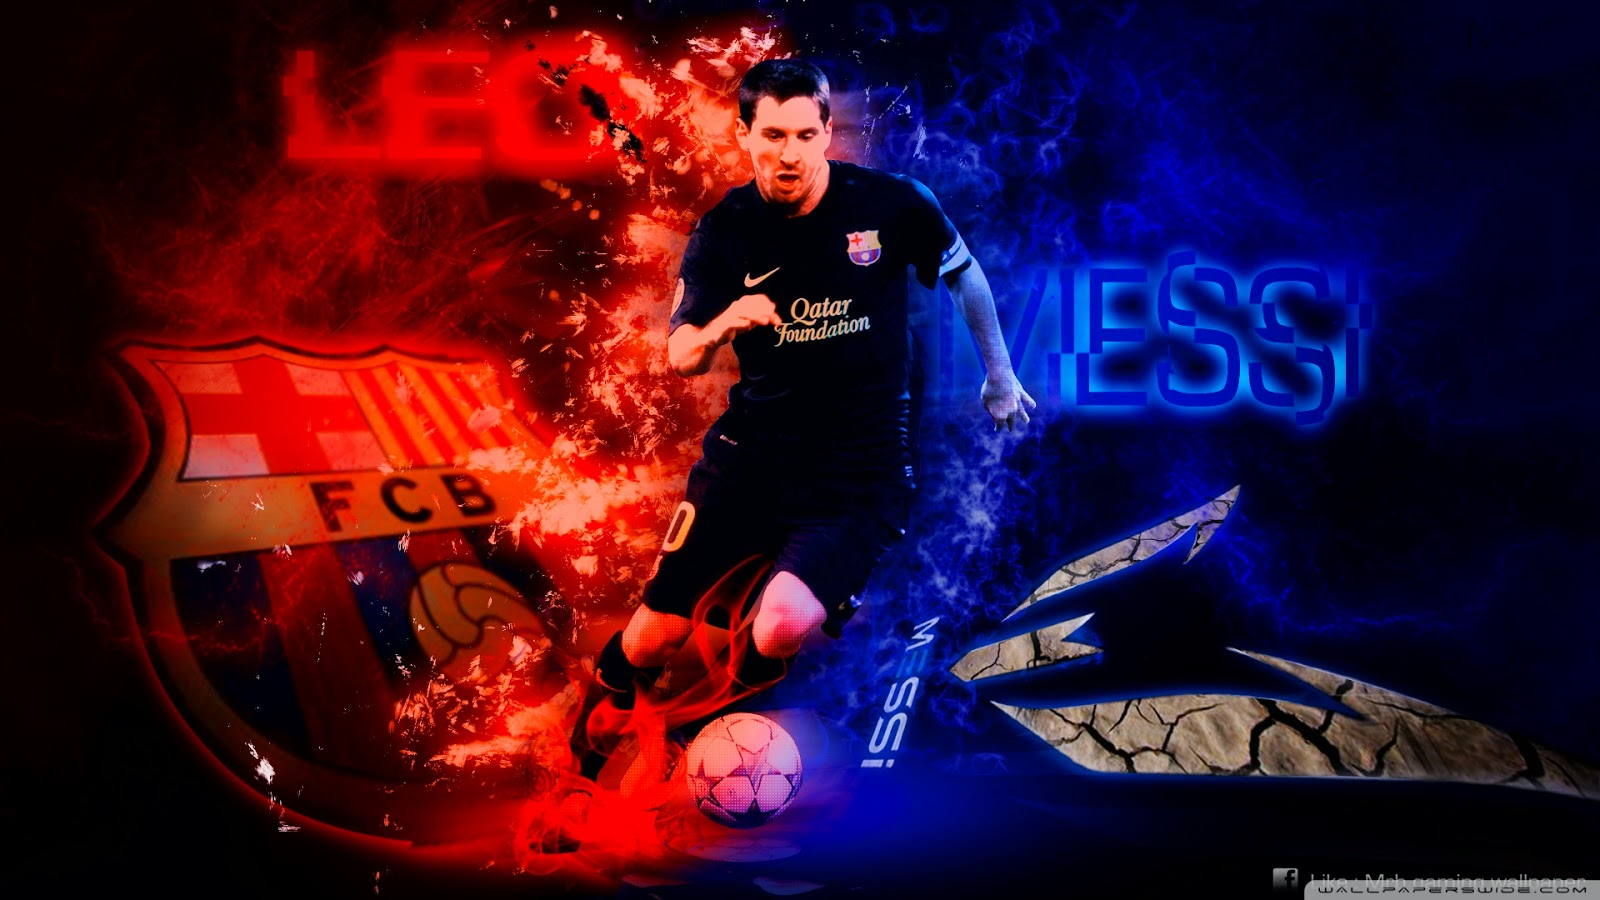 Lionel Messi Wallpaper - Football Wallpaper HD